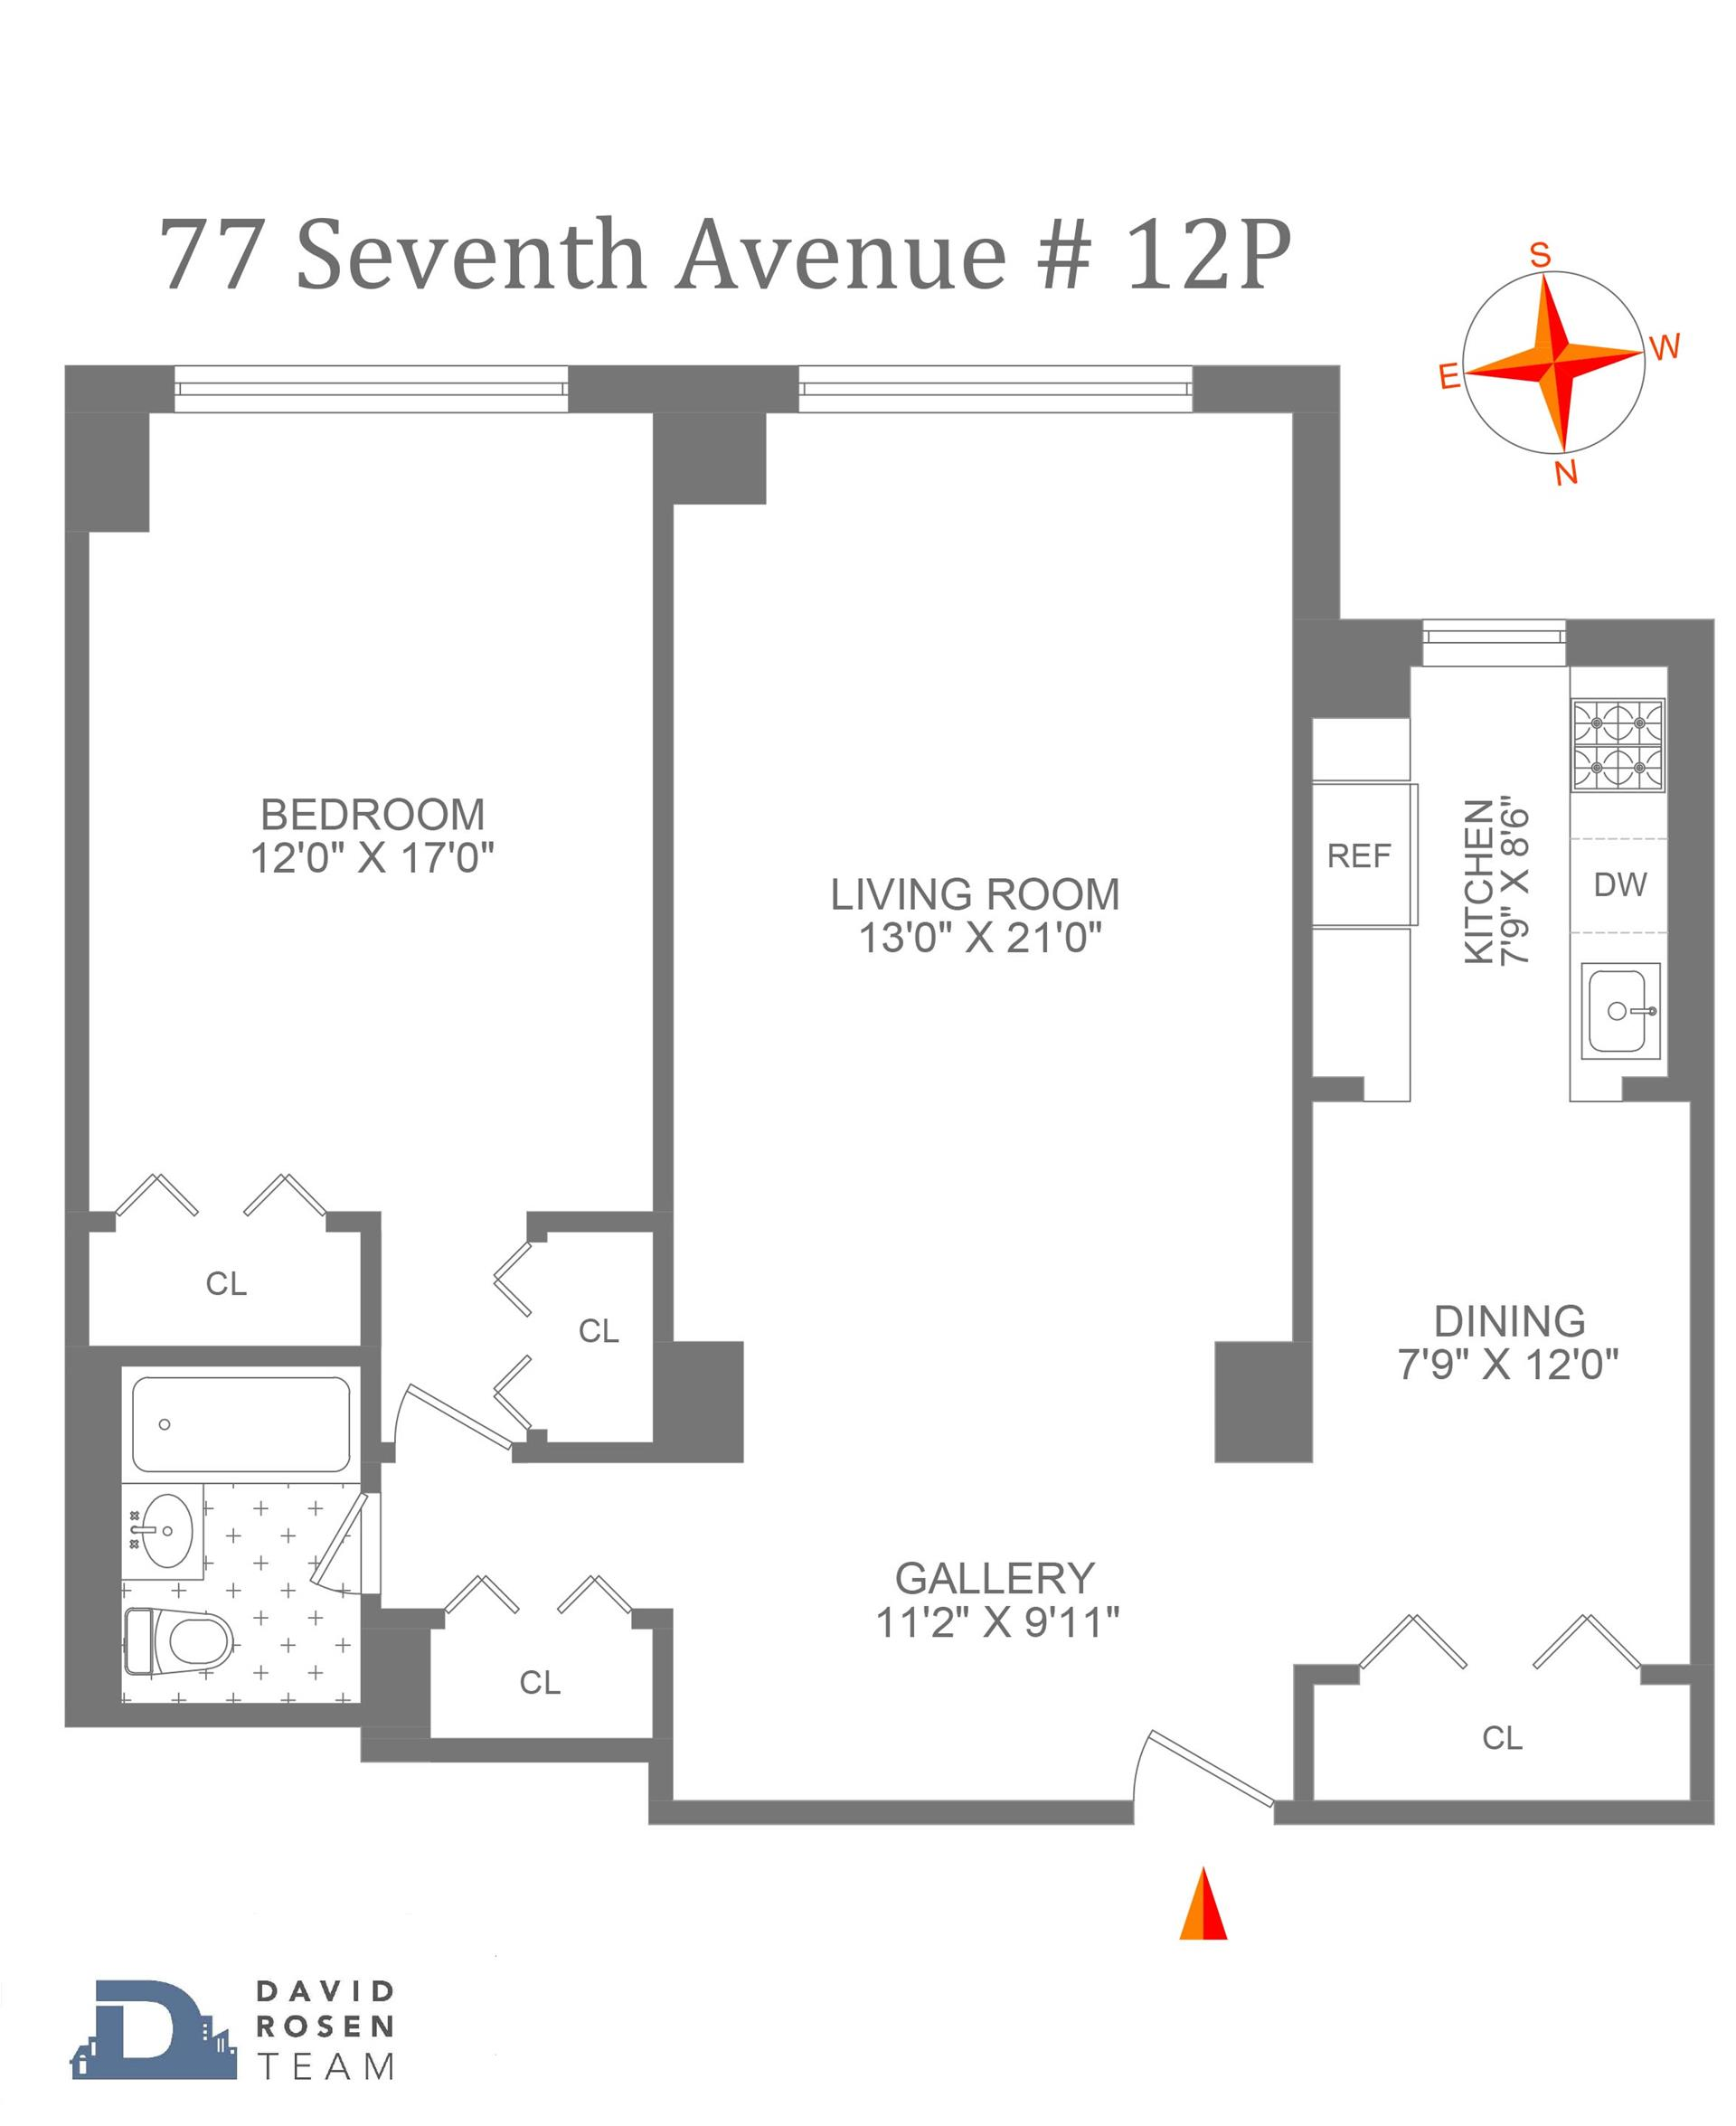 Floor plan of THE VERMEER, 77 Seventh Avenue, 12P - Chelsea, New York